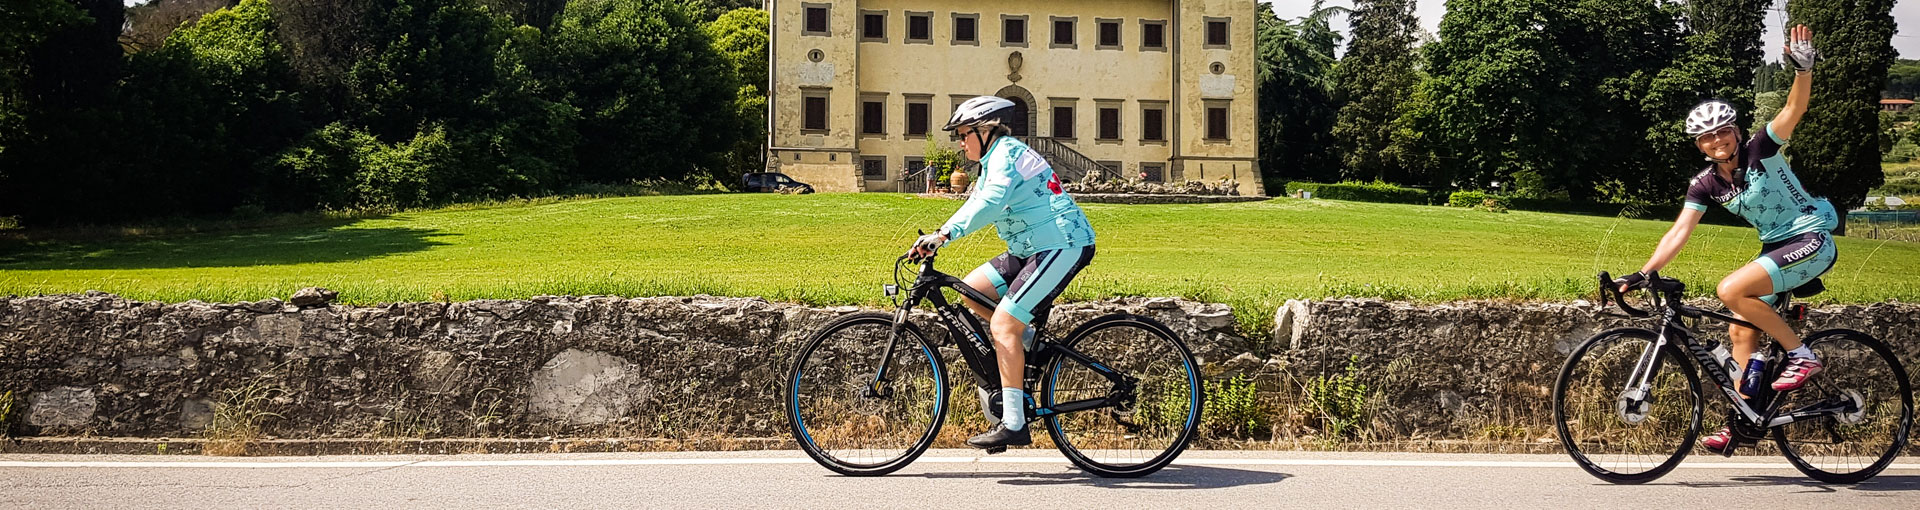 Italian Cycling Holiday in Tuscany - 2019 Topbike Tour of Tuscany - Eat-Drink-Ride - May 8-18 2019